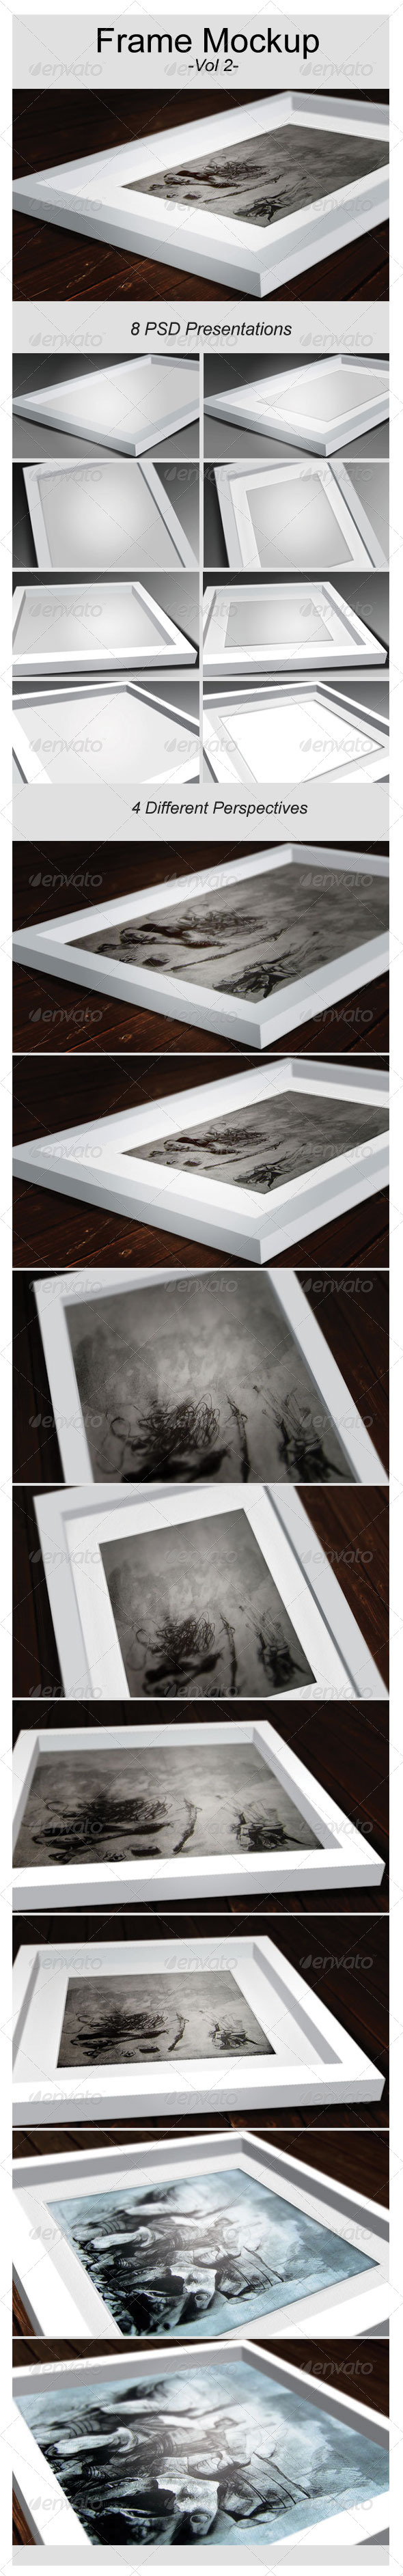 Artwork Frame Mock-Up Vol.2 - Graphics